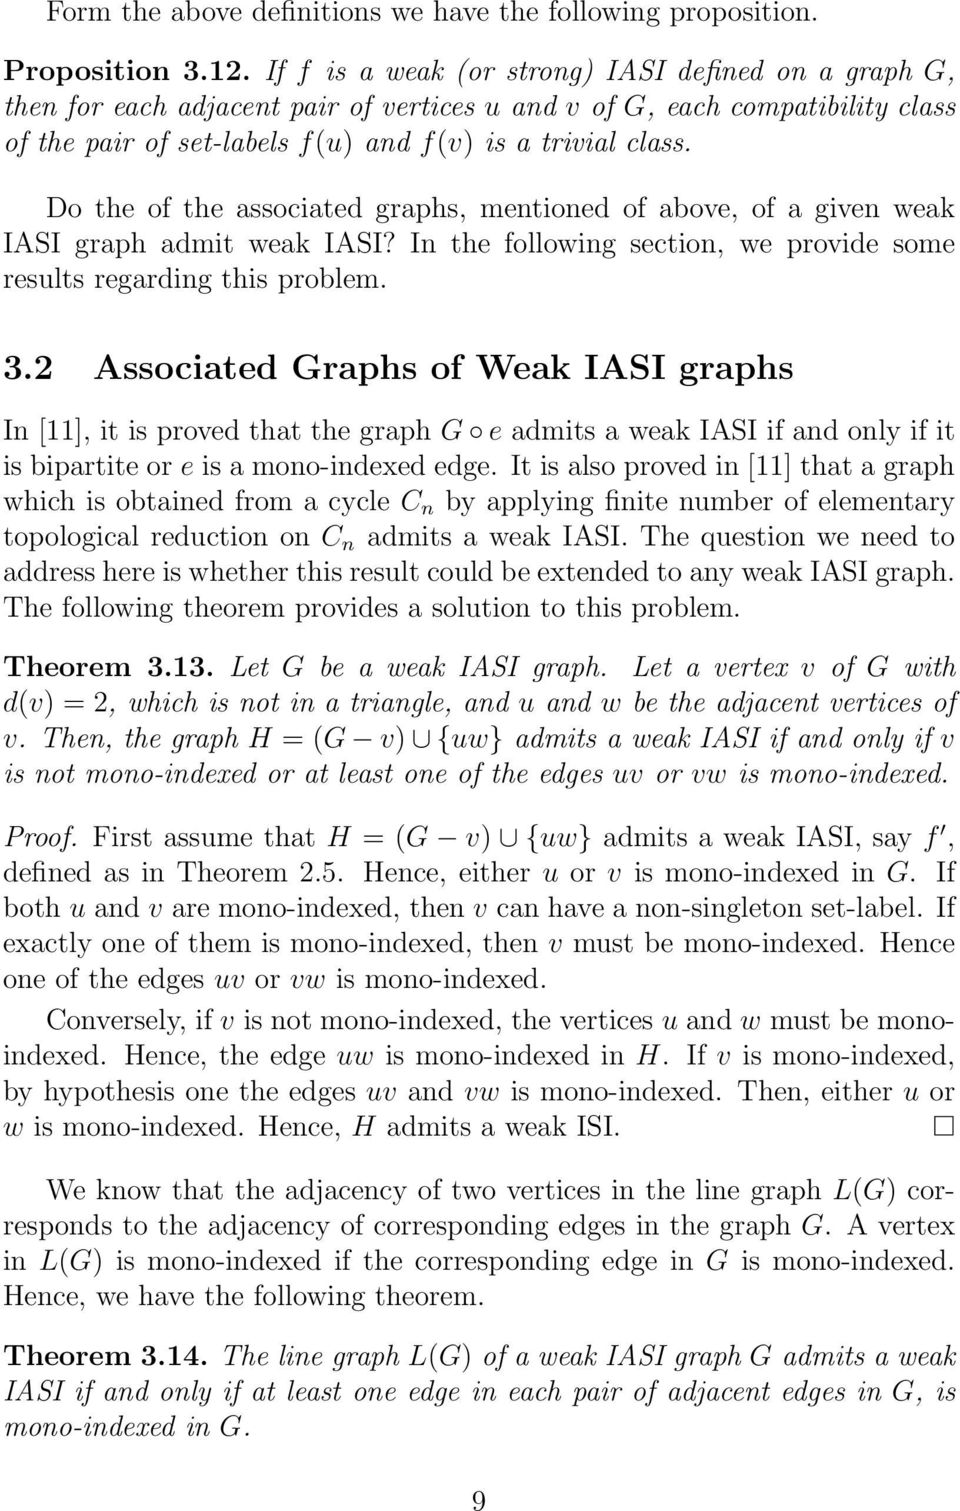 Do the of the associated graphs, mentioned of above, of a given weak IASI graph admit weak IASI? In the following section, we provide some results regarding this problem. 3.